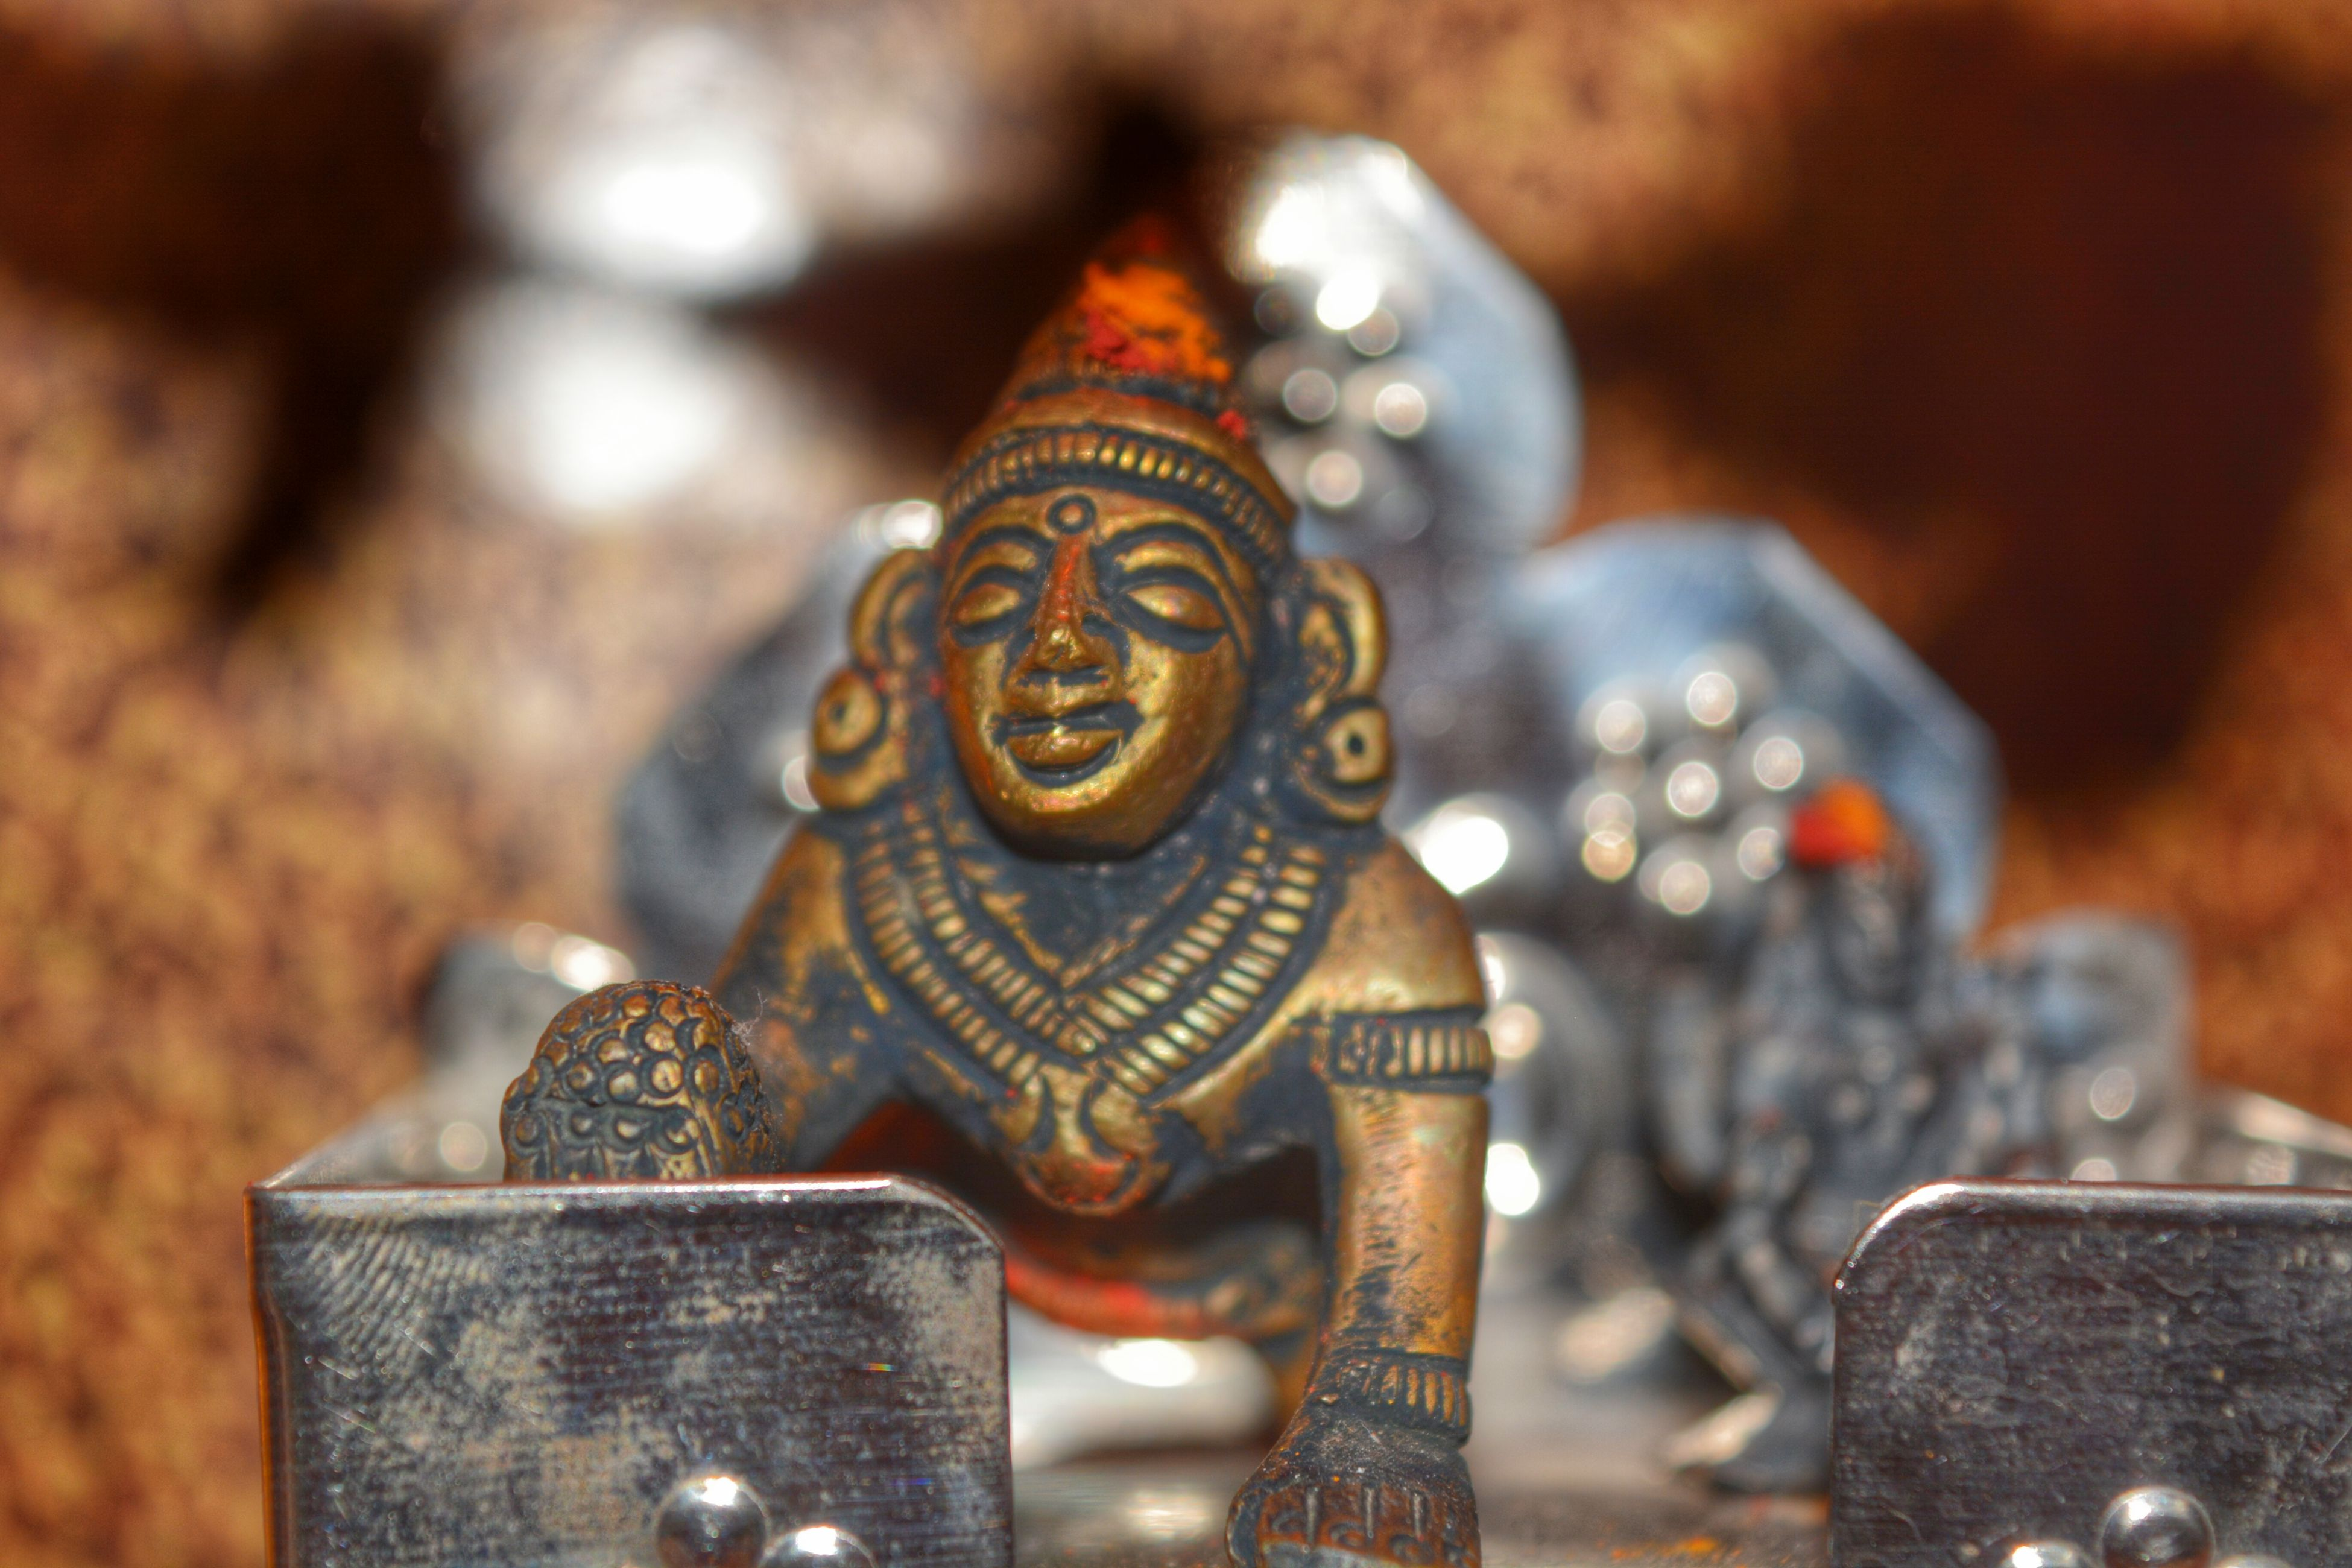 focus on foreground, close-up, art and craft, gold colored, statue, art, sculpture, religion, human representation, creativity, carving - craft product, spirituality, temple - building, ornate, selective focus, animal representation, history, buddha